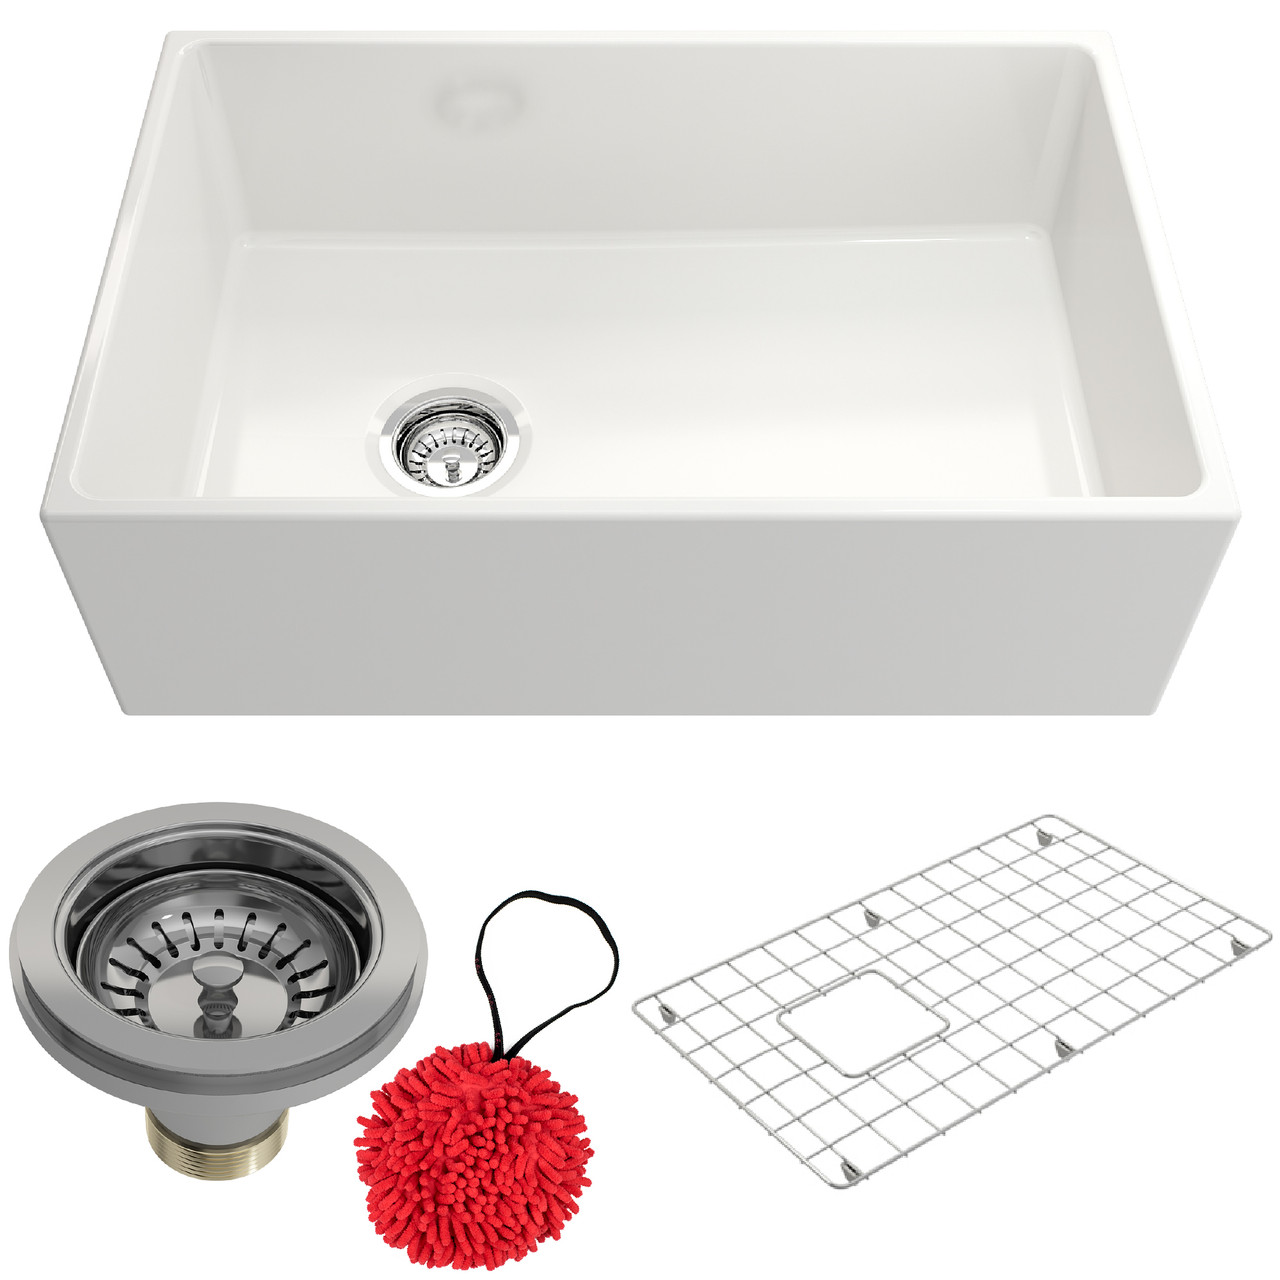 fc60 farmhouse apron front fireclay 30 single bowl kitchen sink with offset drain